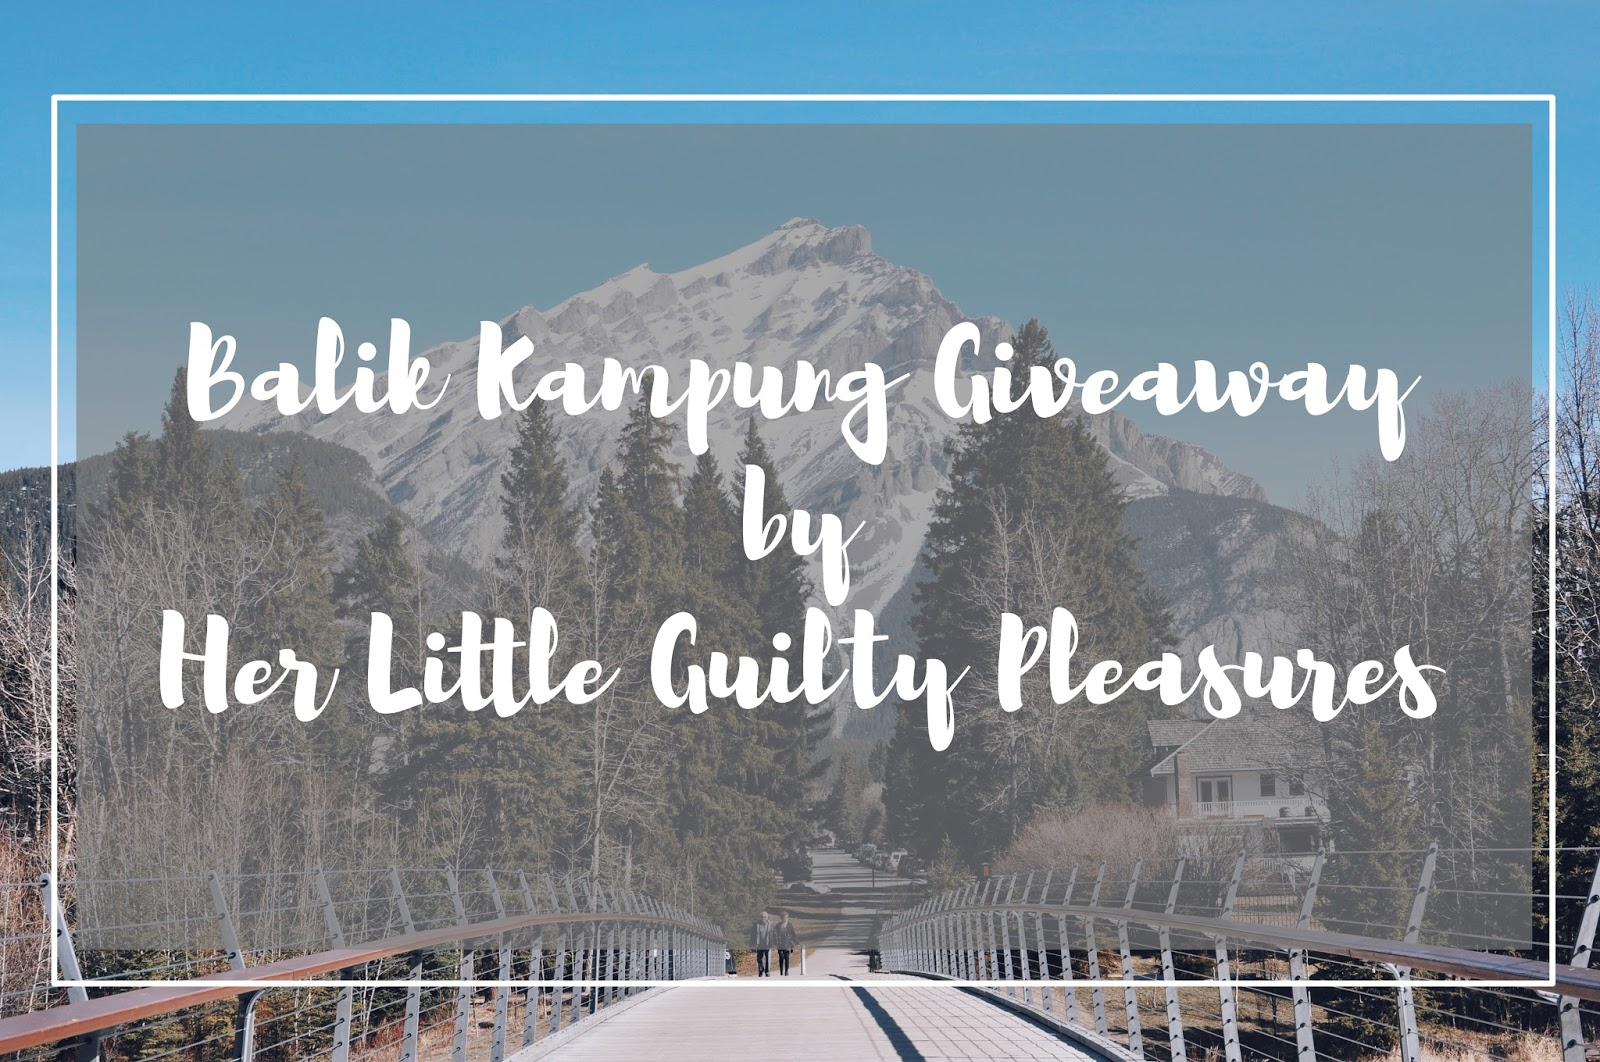 Balik Kampung Giveaway by Her Little Guilty Pleasures.